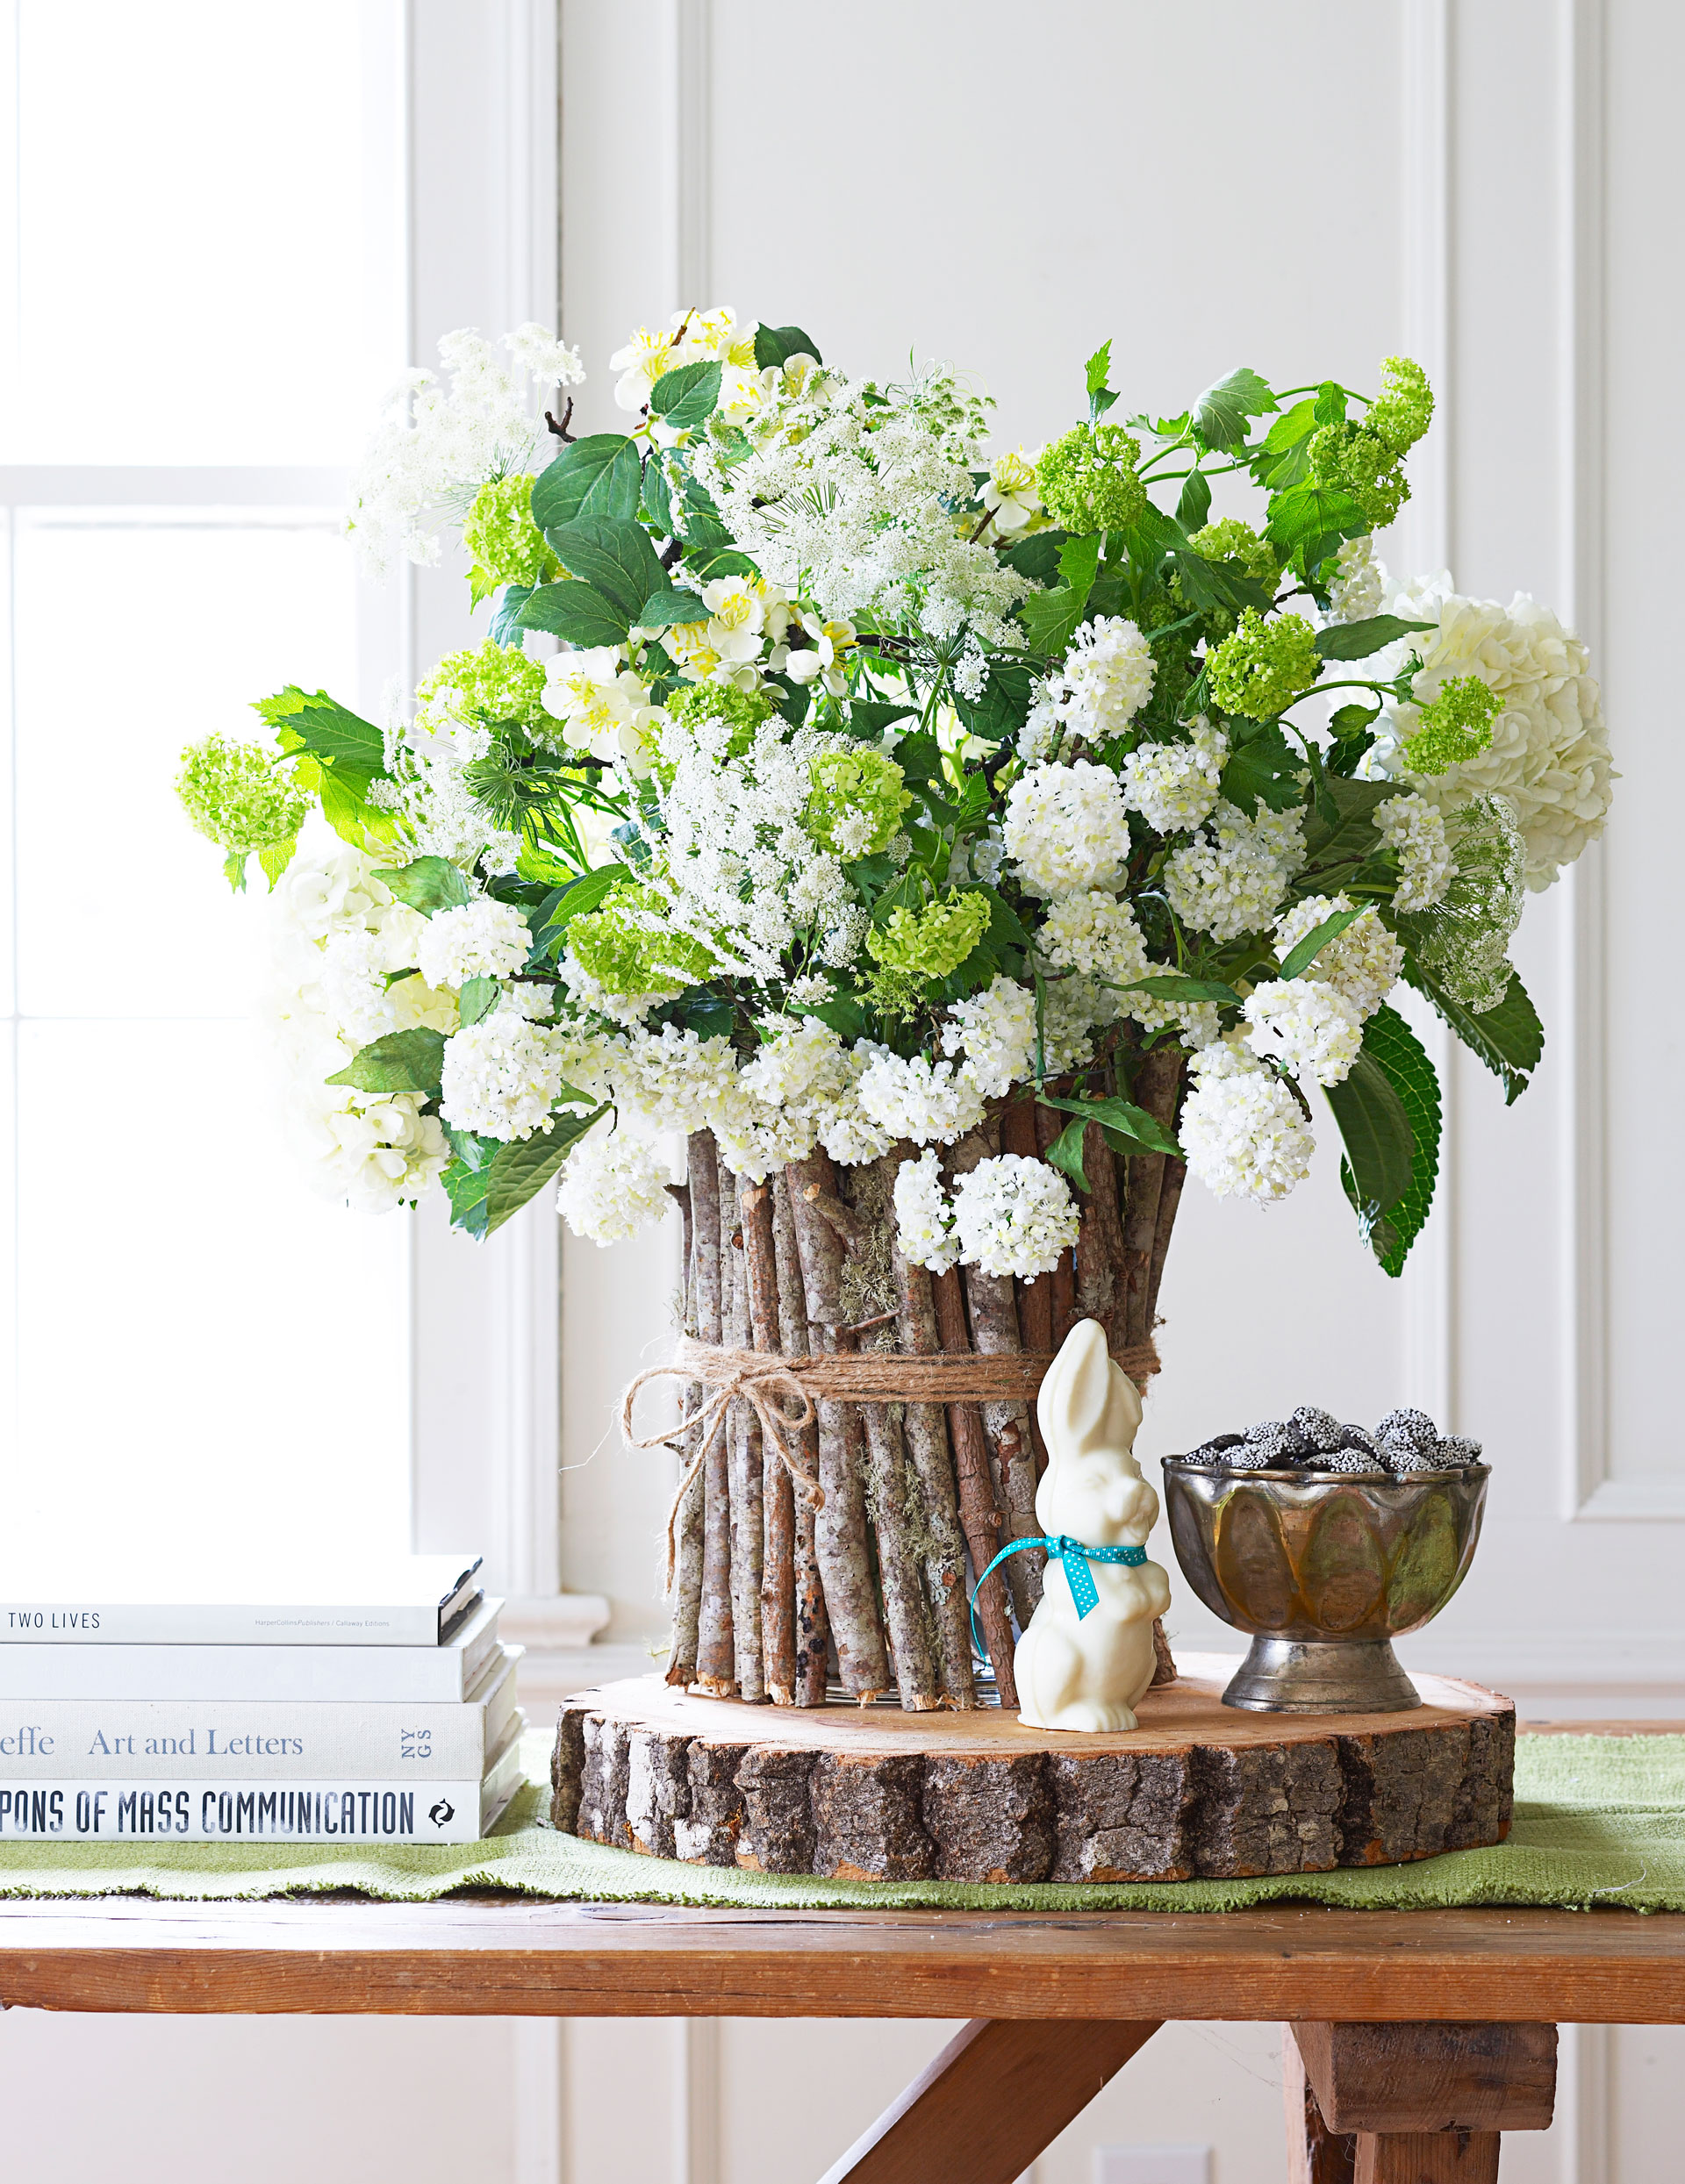 75 Easter Flower Arrangements Floral Centerpieces for Easter : 54ff4e805ad6e 0414 easter lace s2 from www.goodhousekeeping.com size 1920 x 2489 jpeg 1038kB